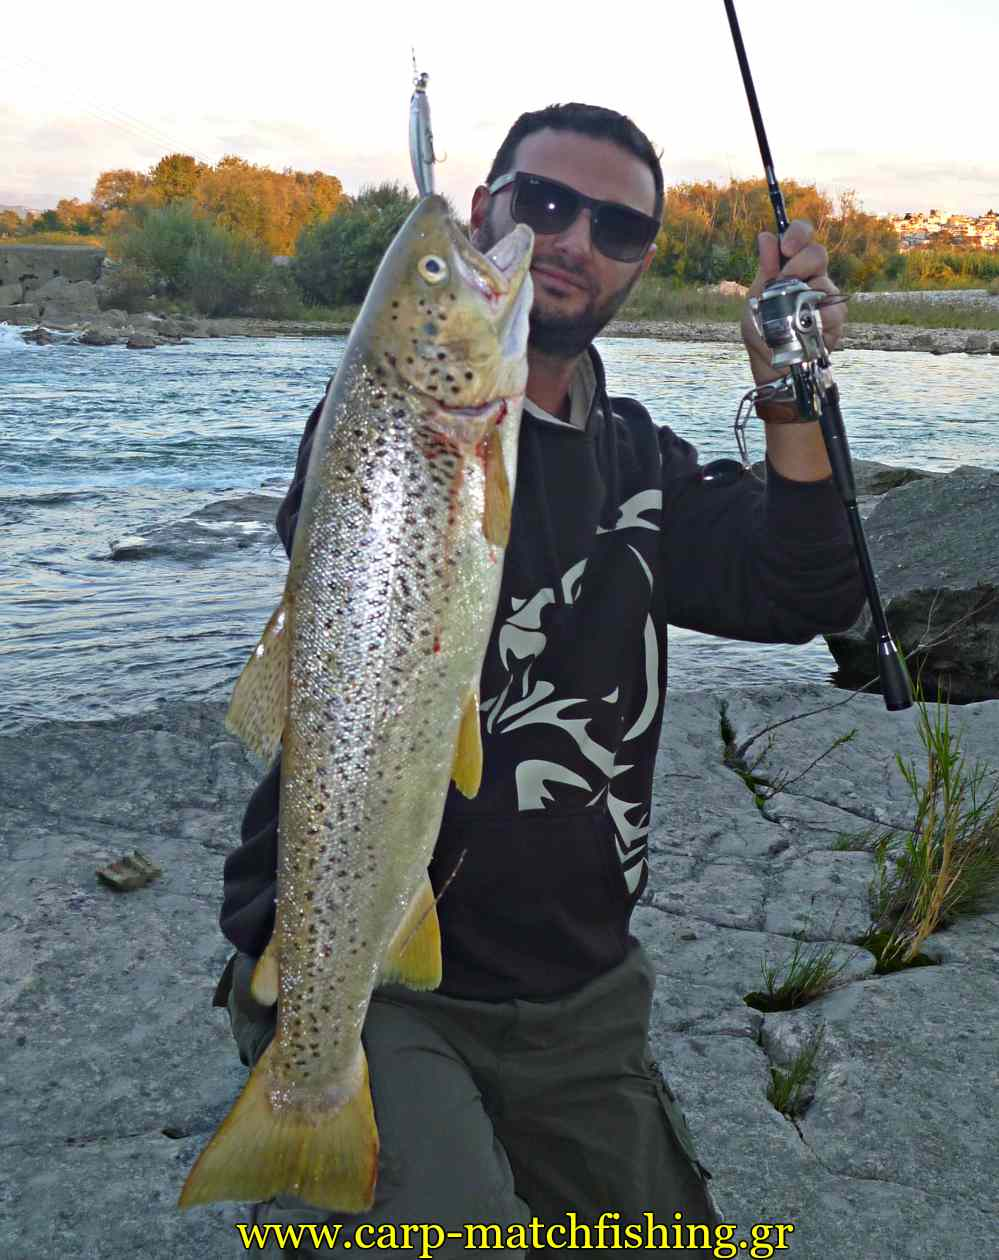 trout-fishing-lures-big-trout-carpmatchfishing